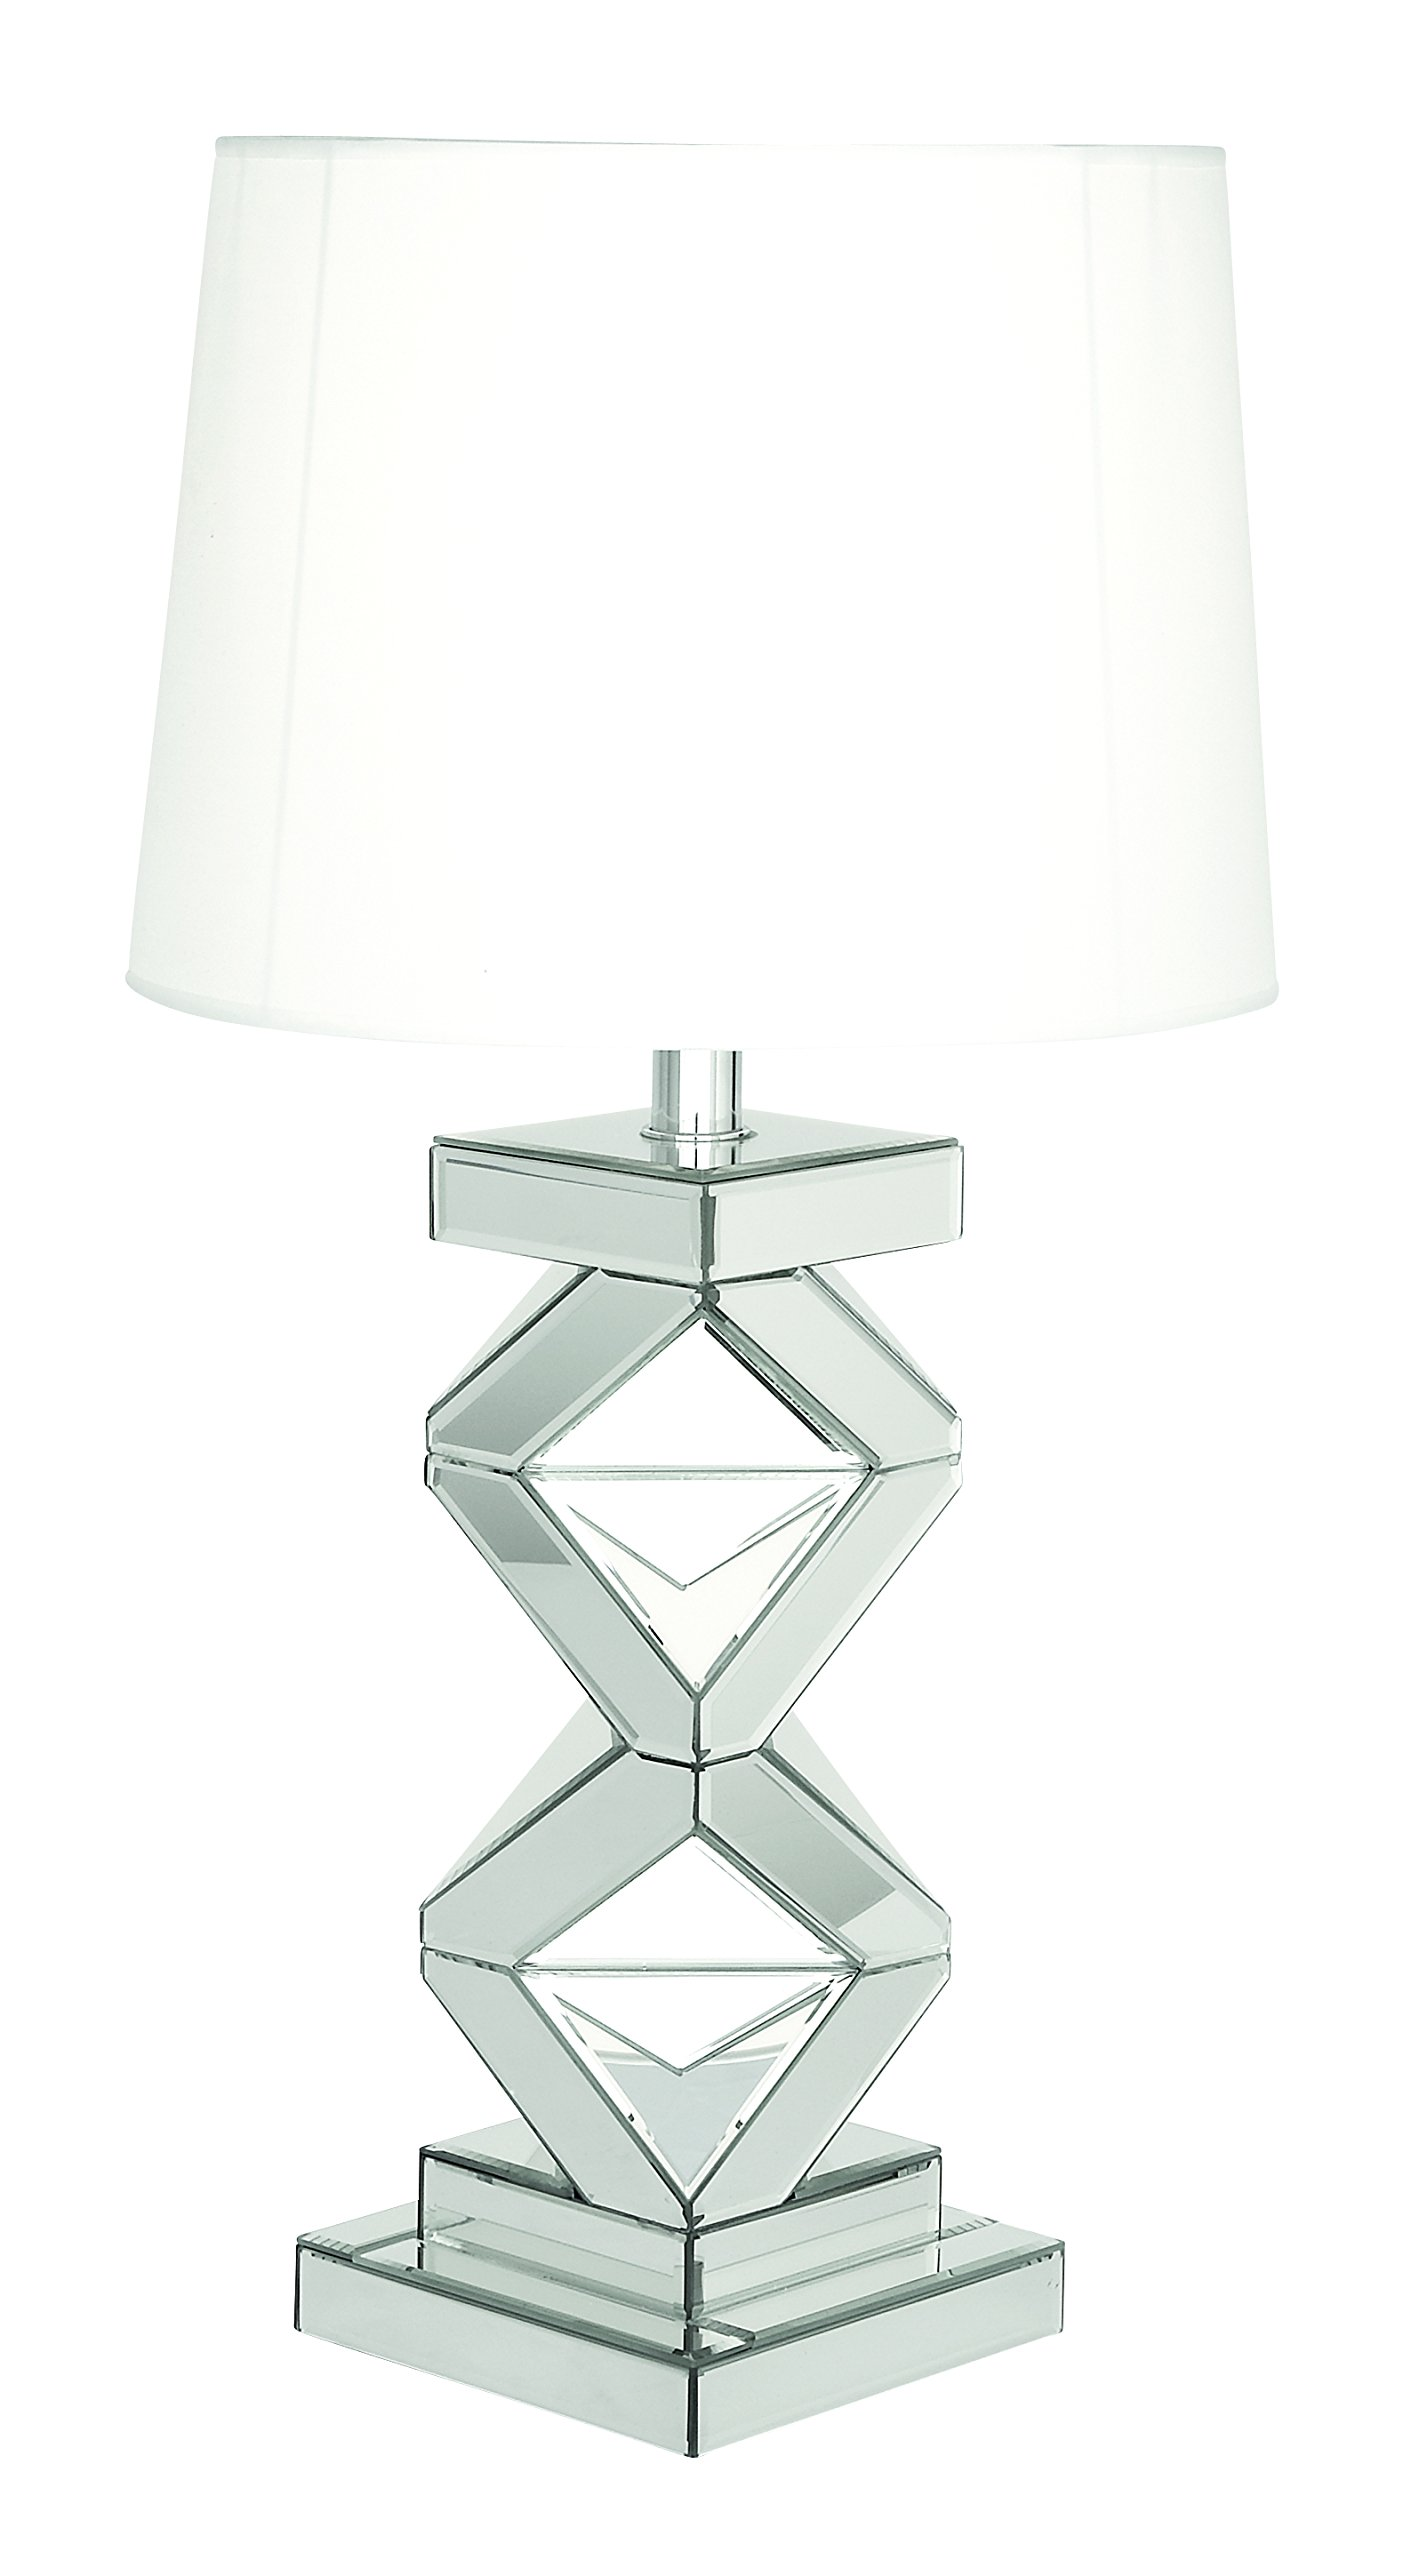 Deco 79 87371 Glass Mirror Table Lamp, 29''